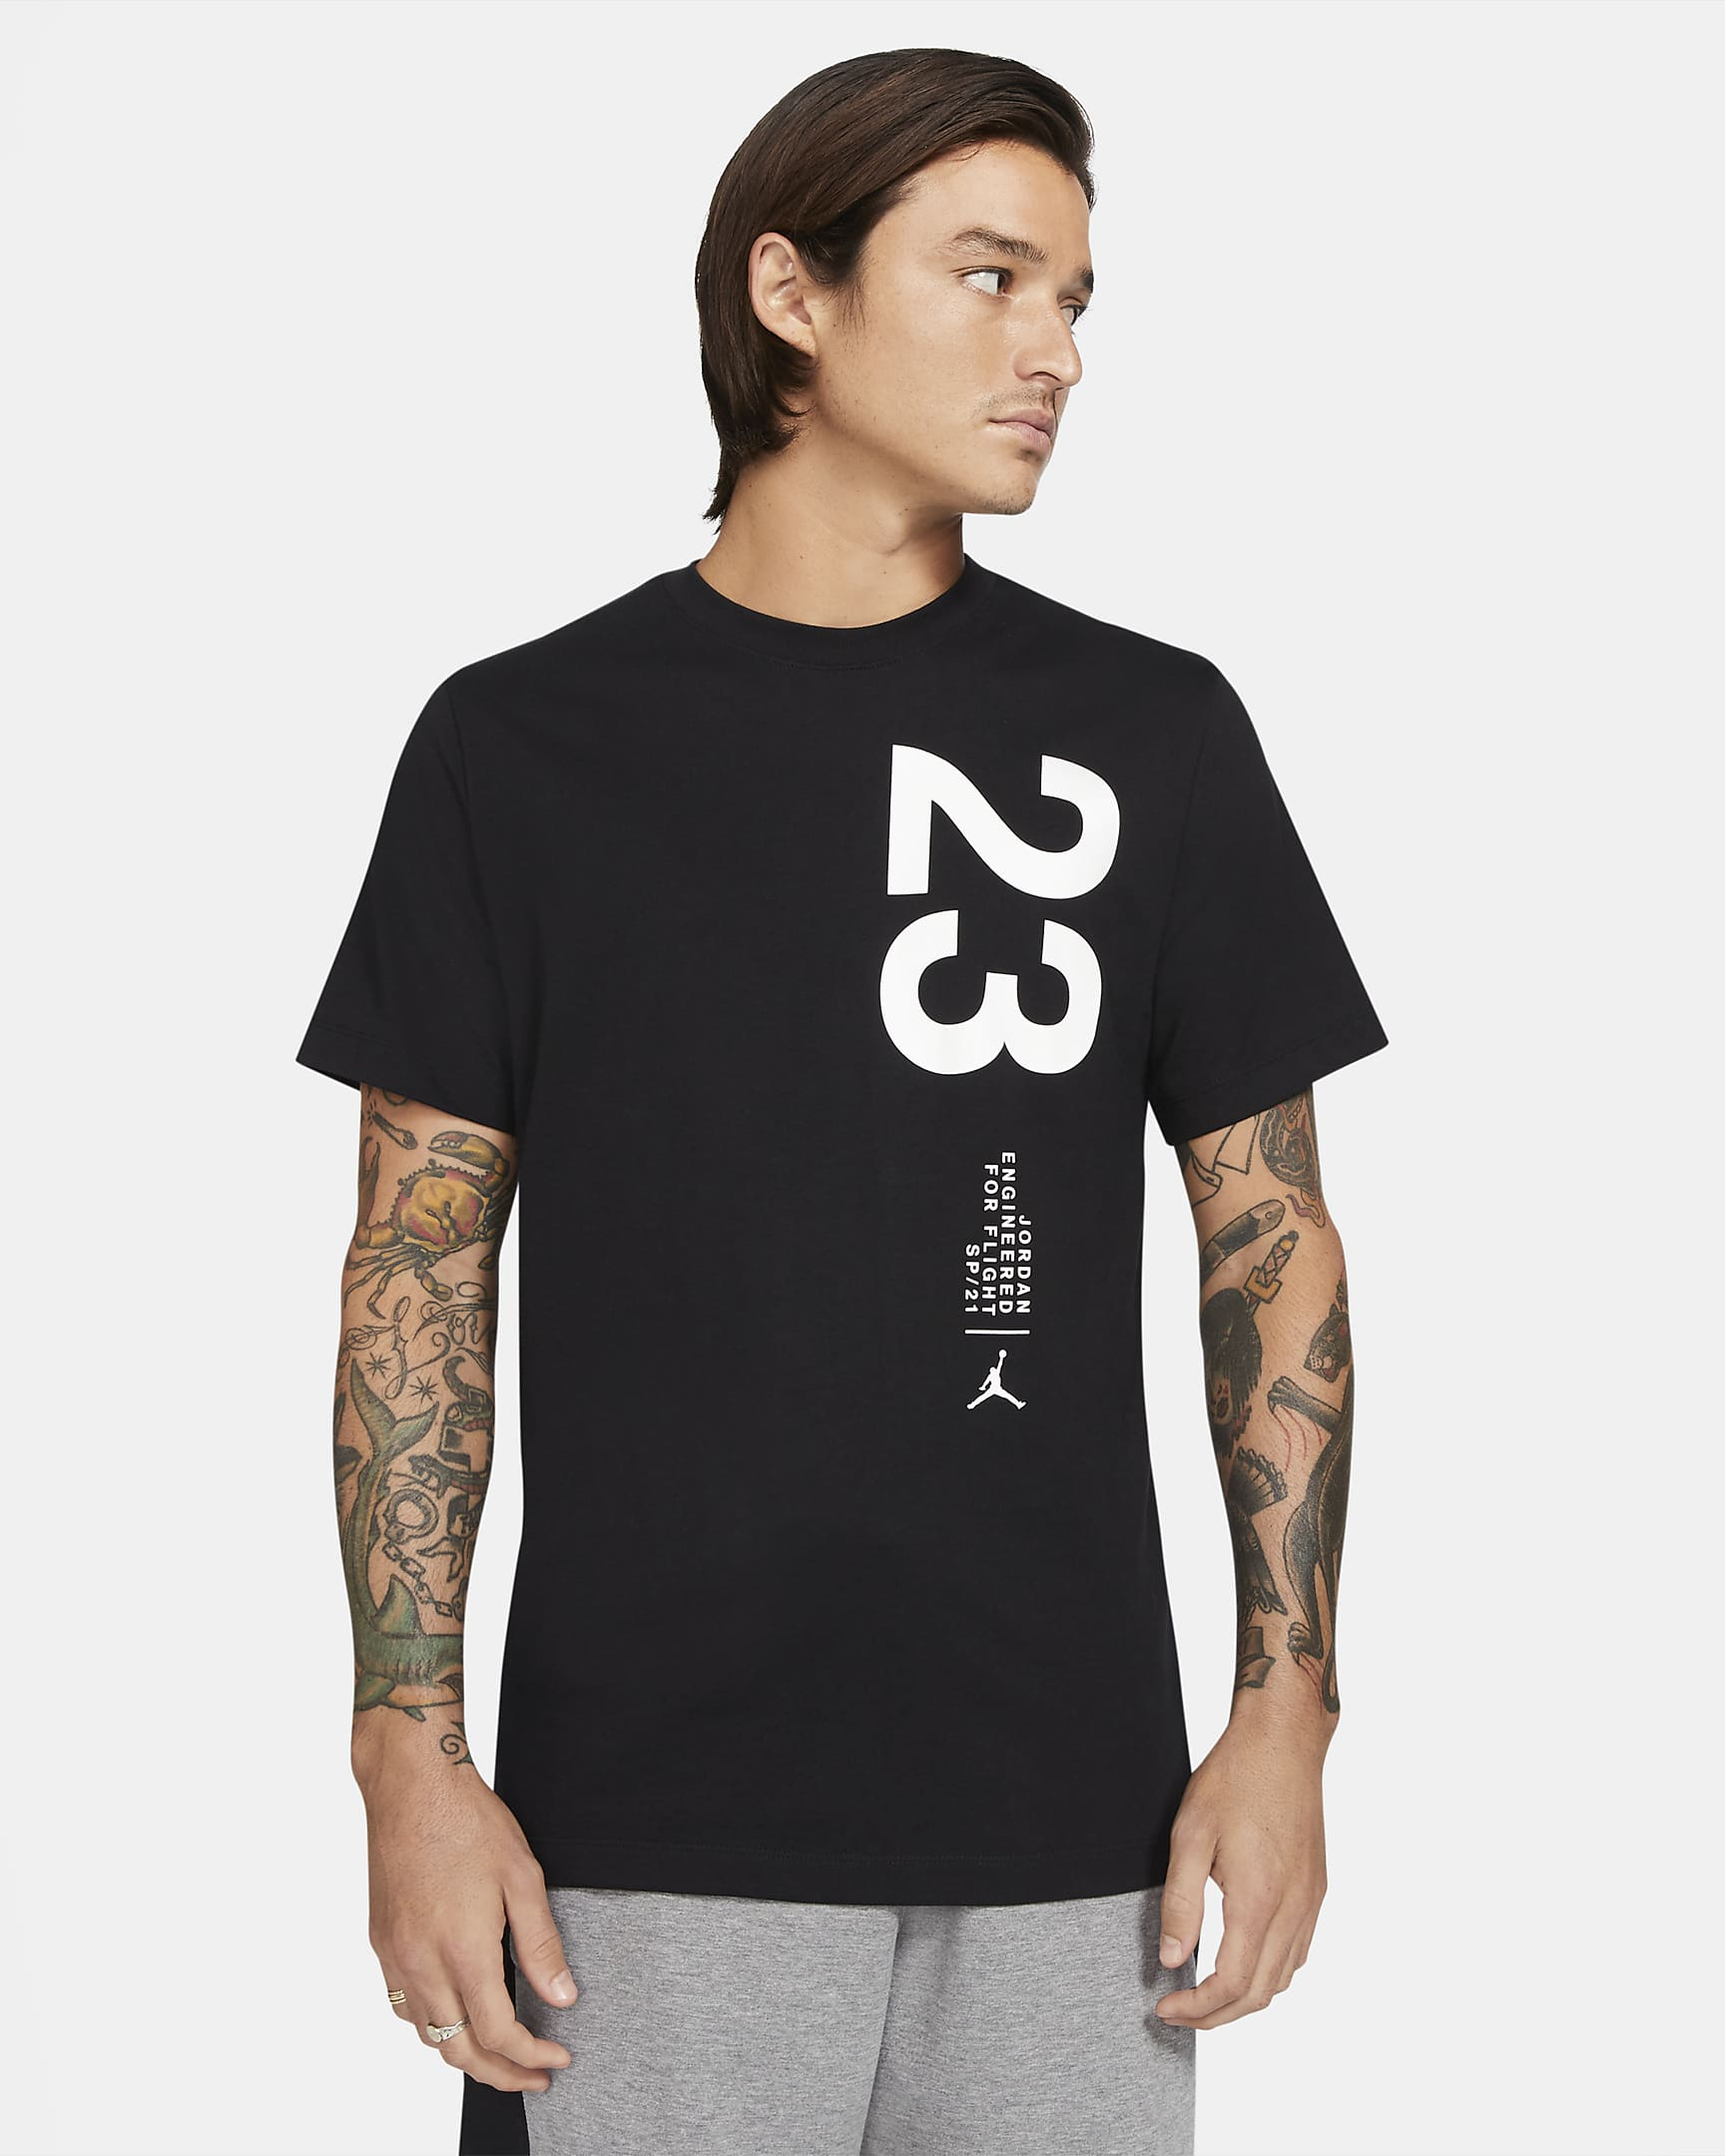 jordan-23-engineered-mens-short-sleeve-t-shirt-nHJnsd